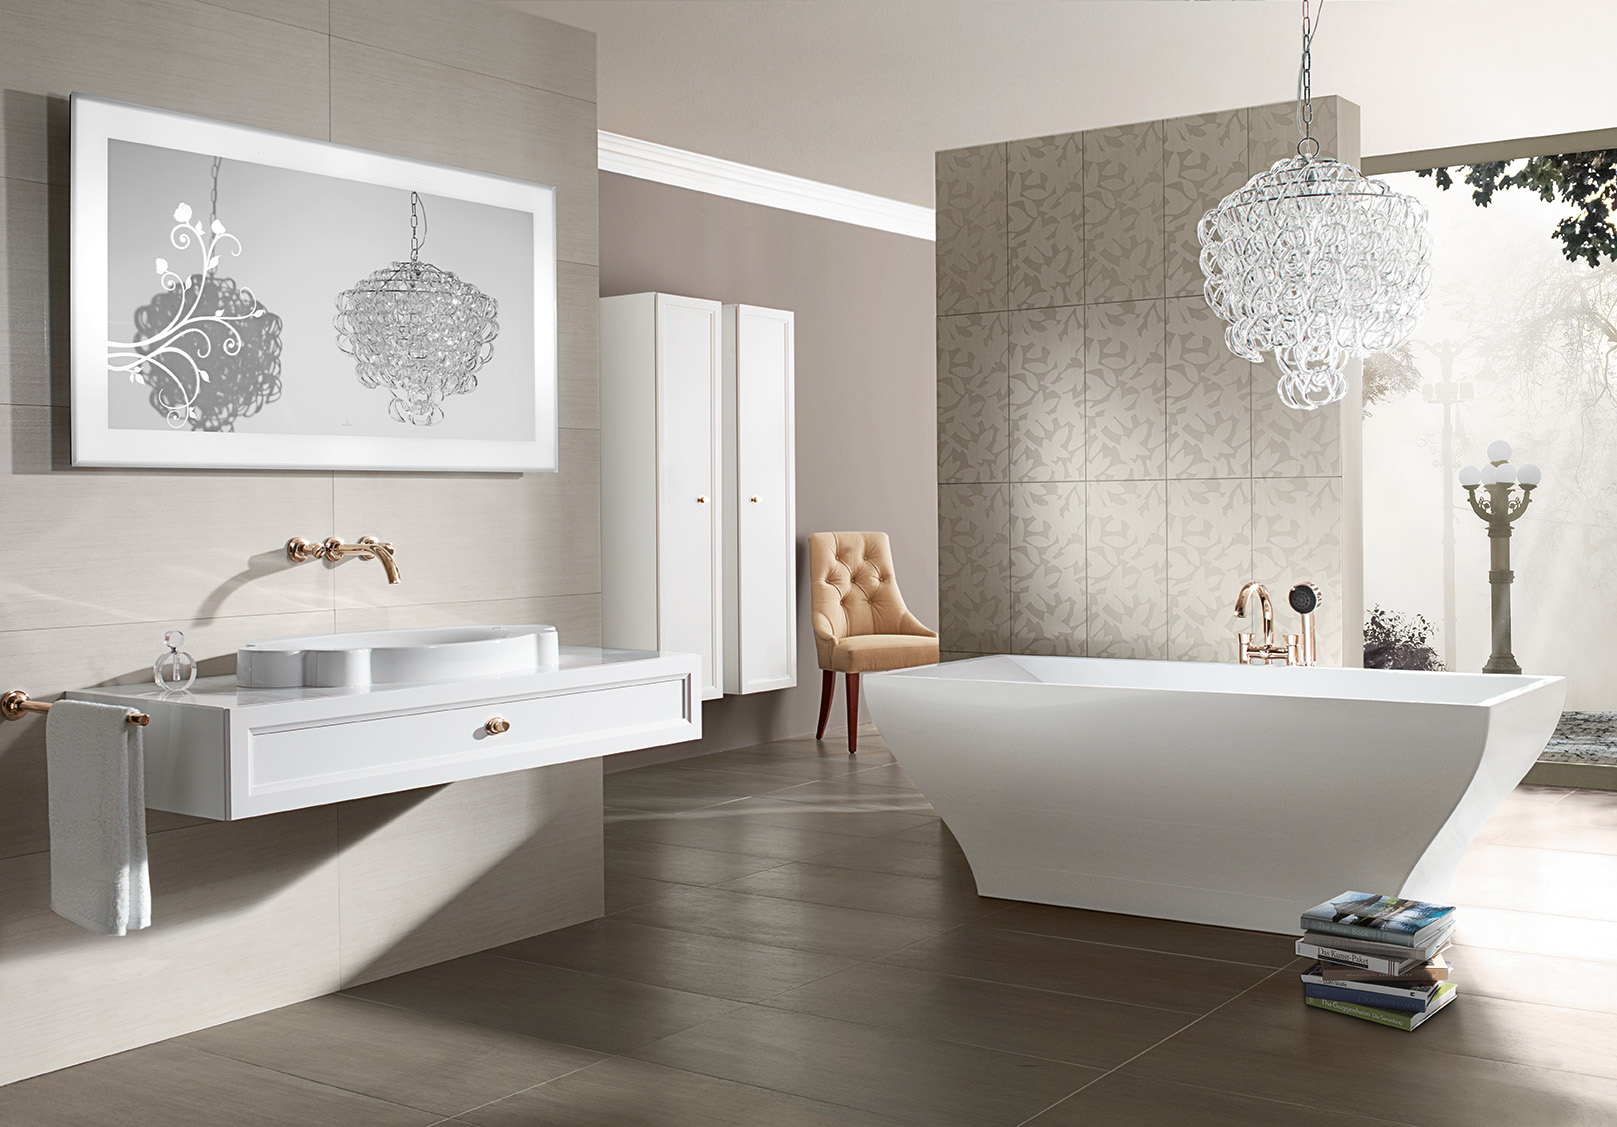 Villeroy and boch tiles for bathrooms